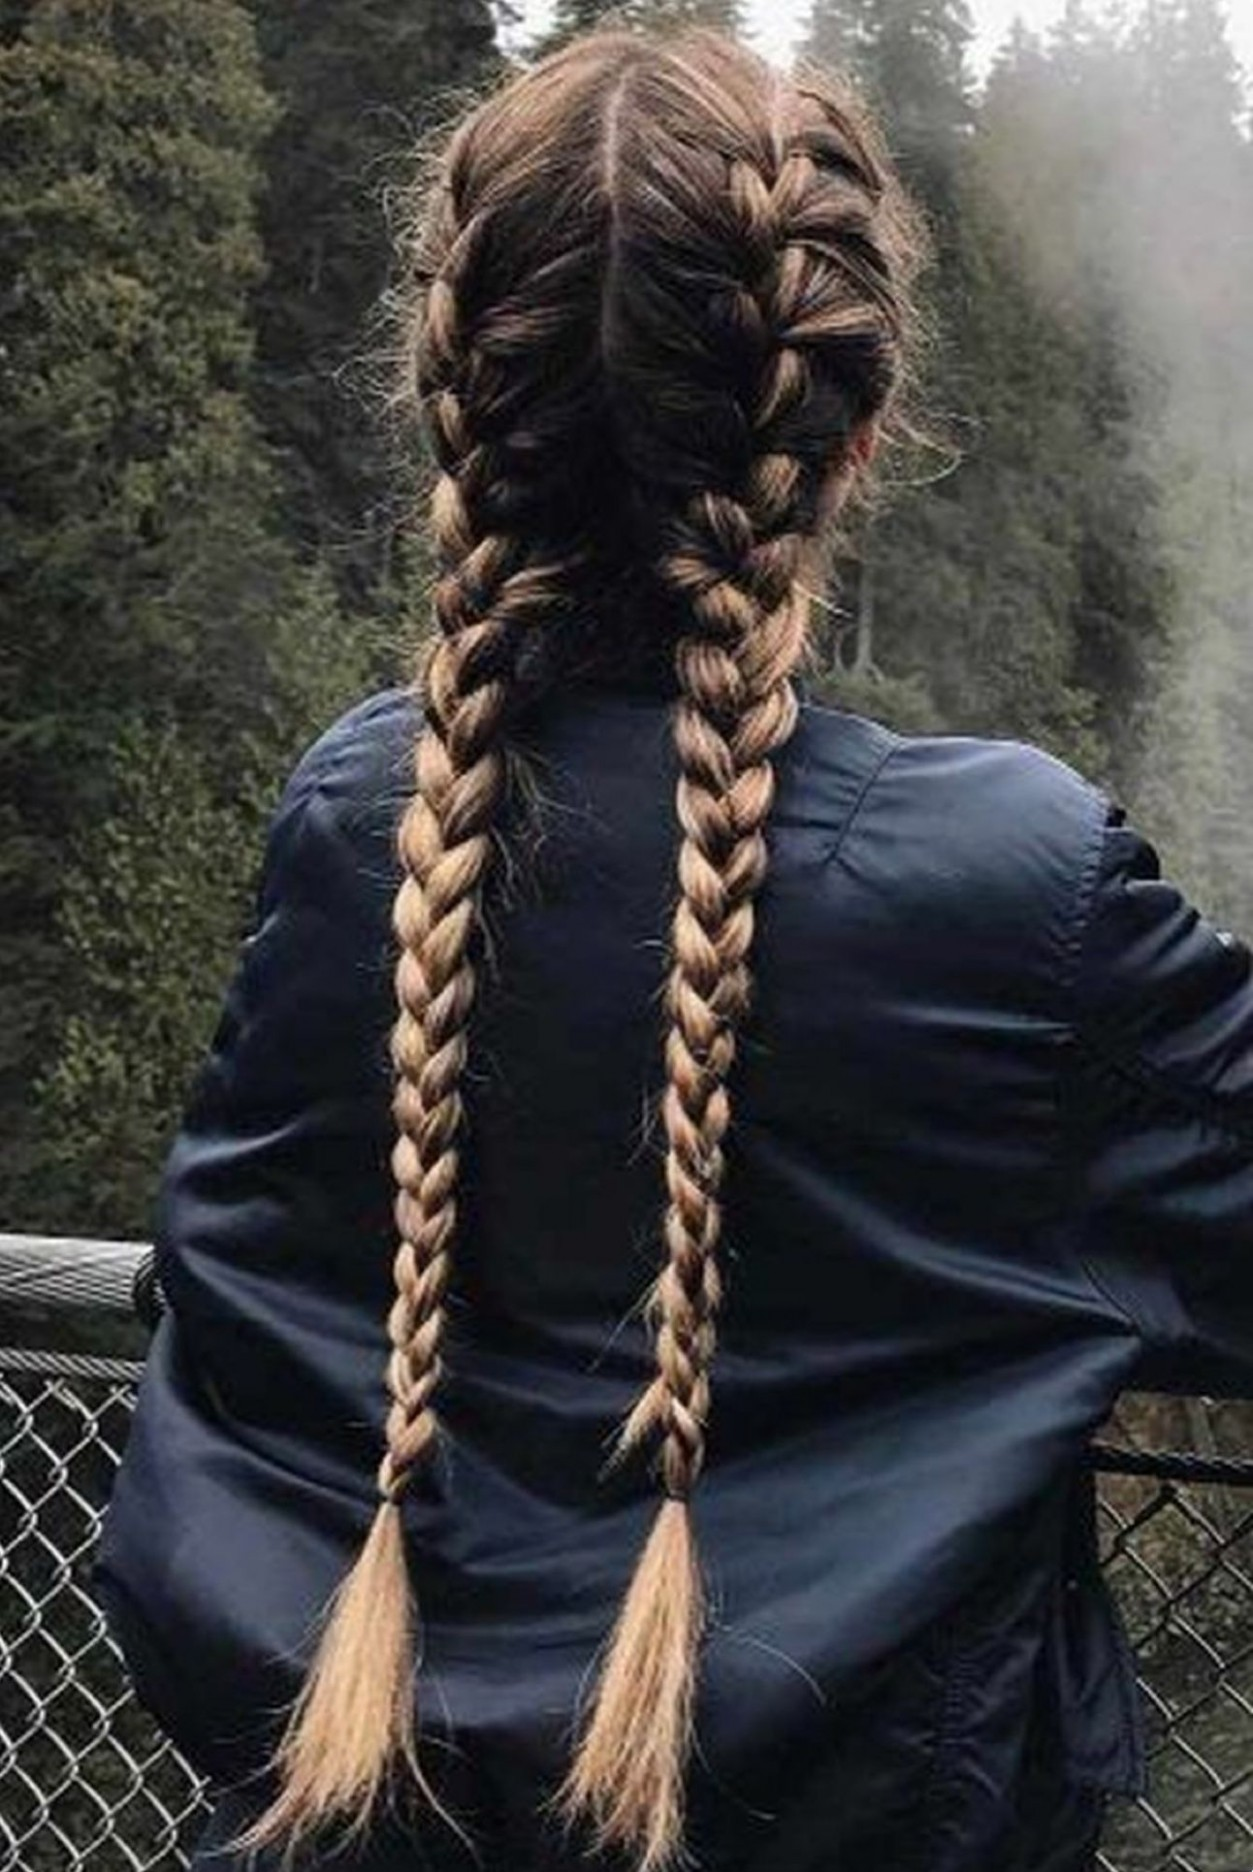 11 French Braids French Braid Hairstyles, Long Hair Styles, Cool 2 Long French Braids